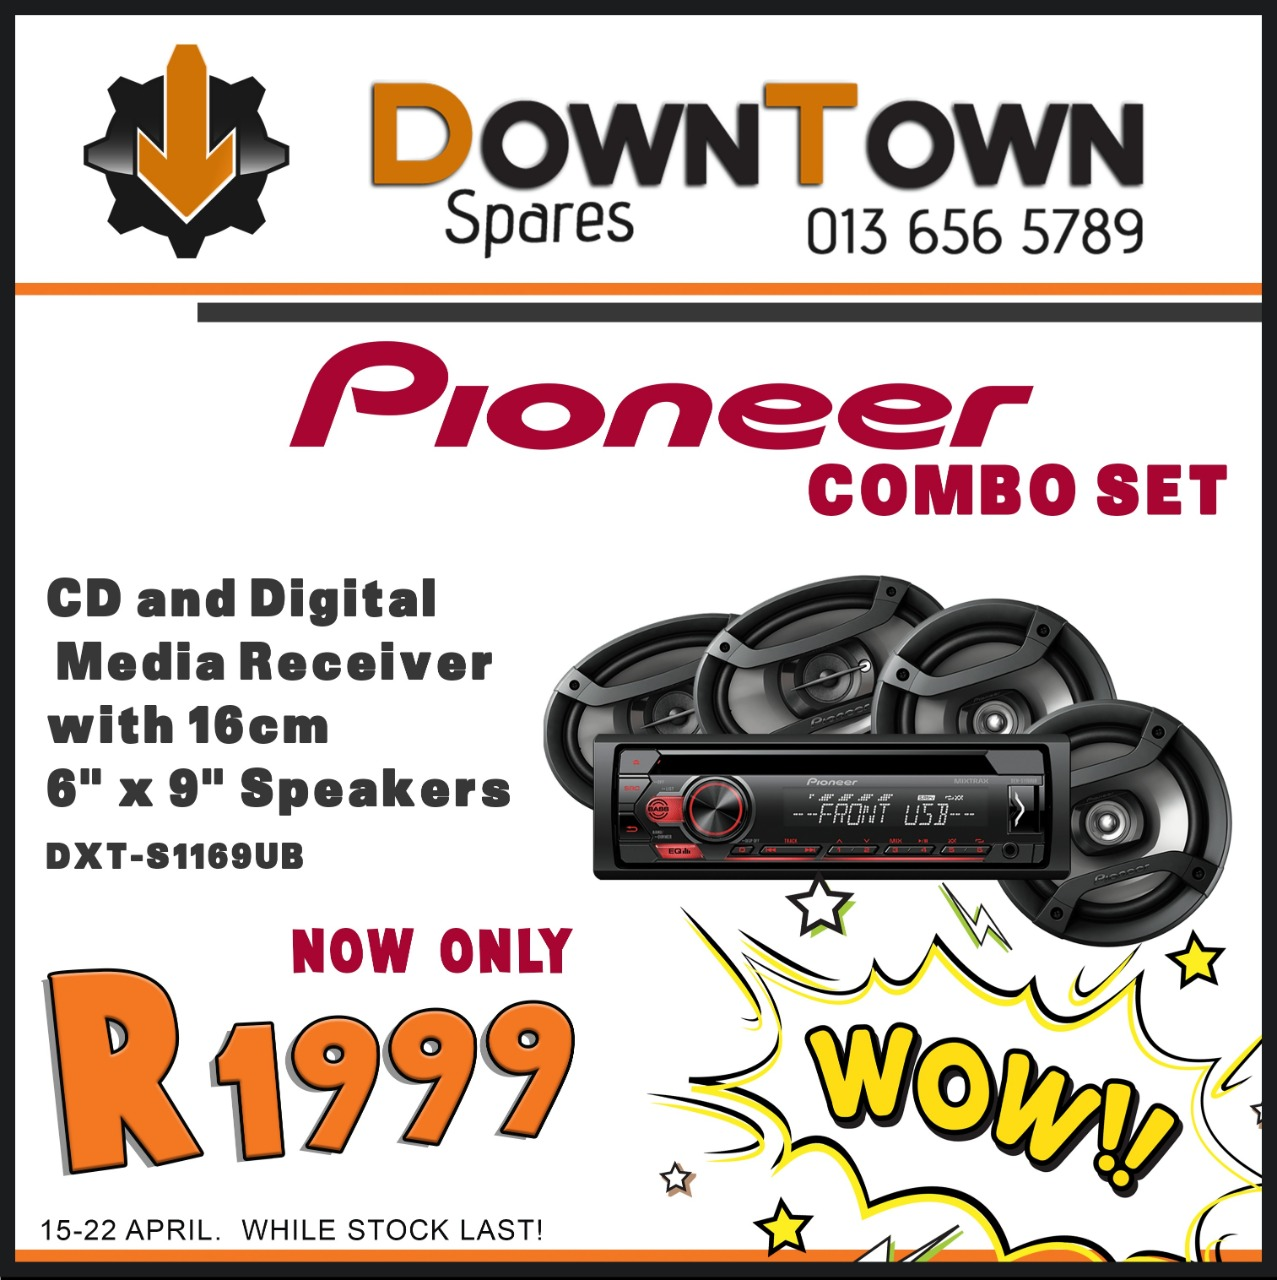 Pioneer Combo Set NOW at Downtown Spares!